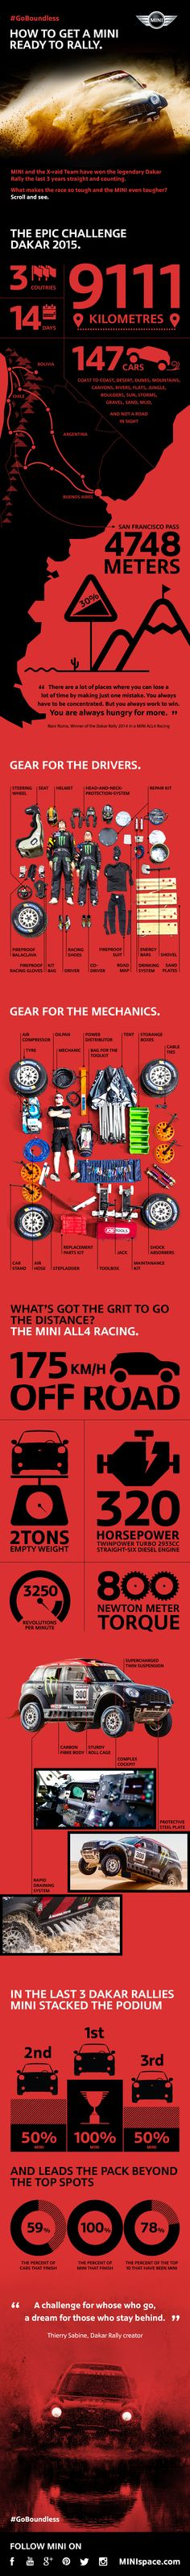 What gives MINI All4 Racing the grit to go the distance? Click to find out.